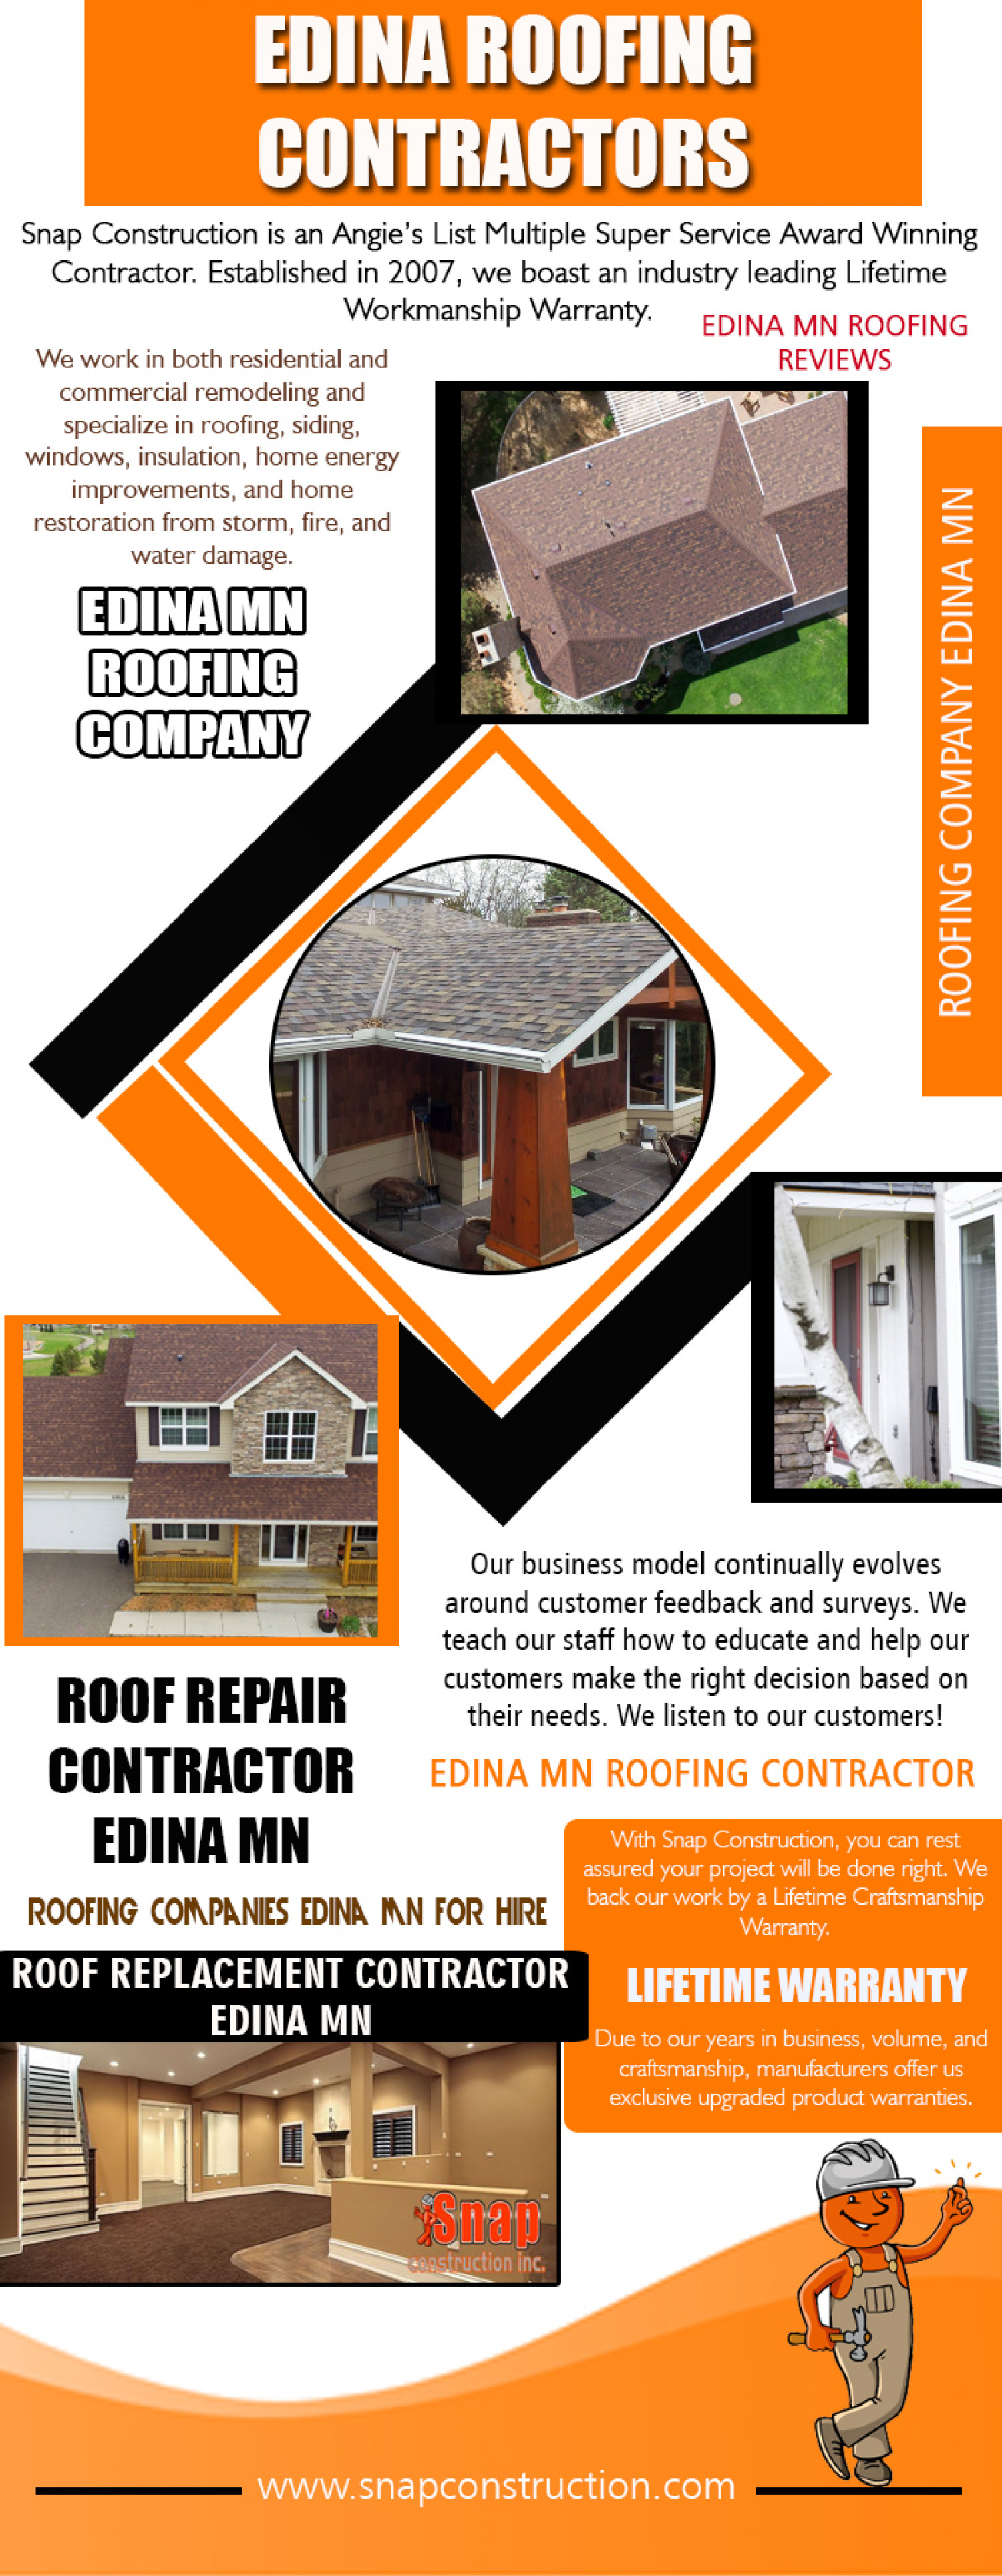 Edina Roofing Contractors Infographic